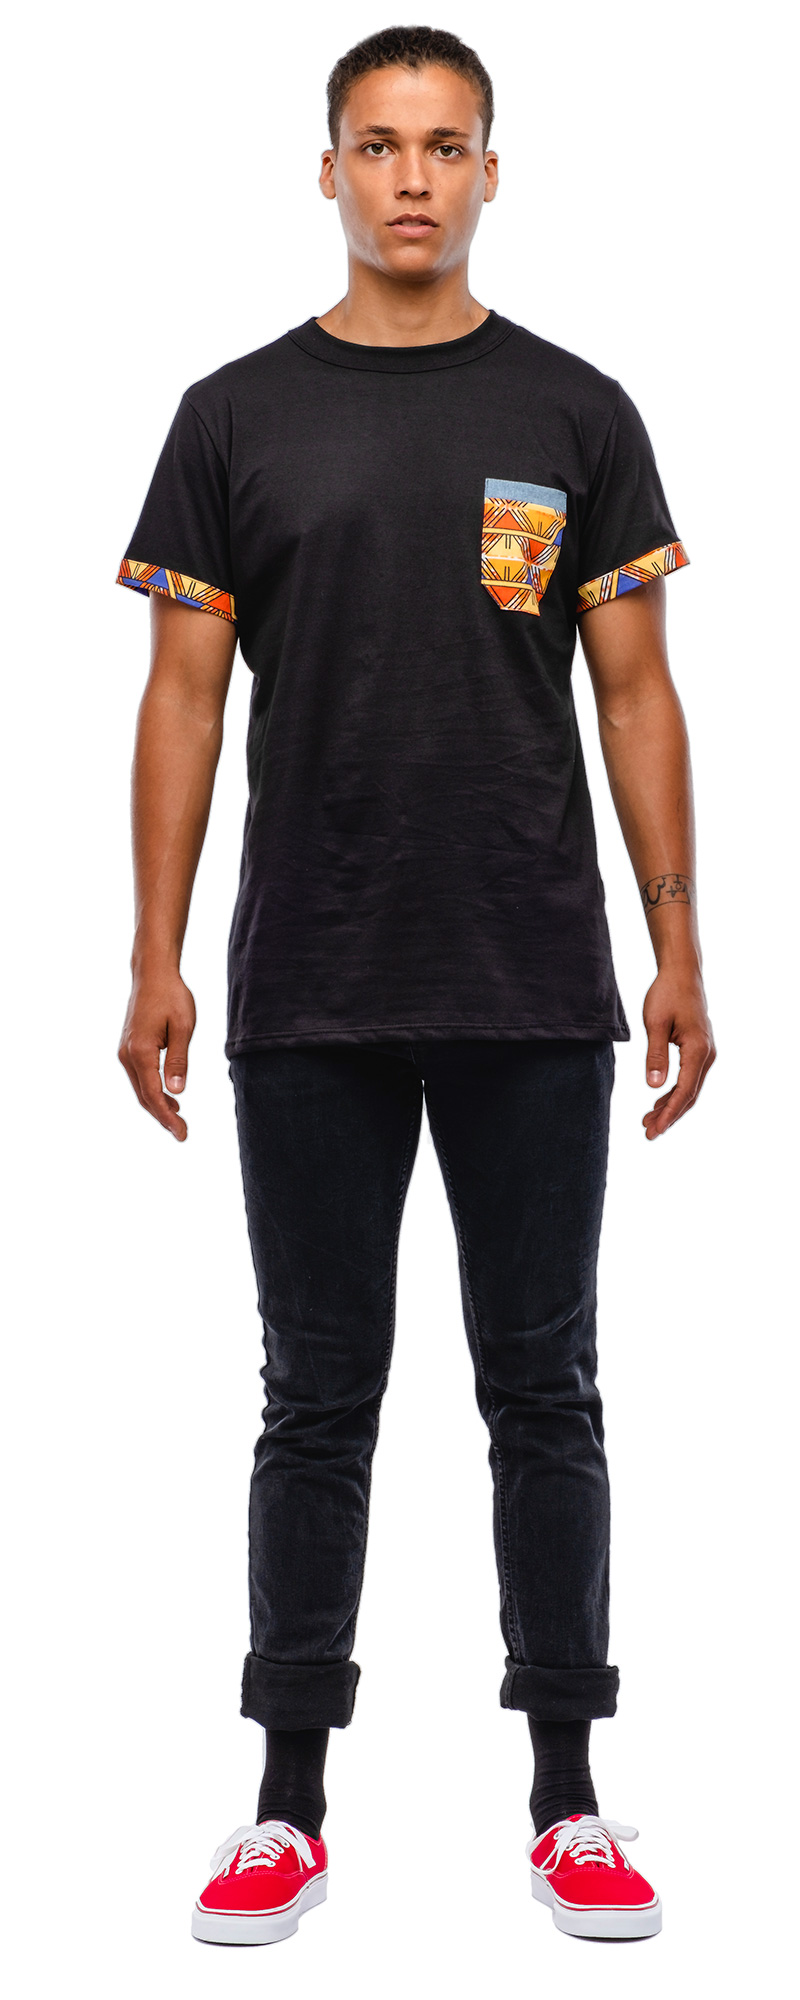 Black short sleeved t-shirt. longline silhouette, unisex design. Printed muslin trim on the sleeves and chest pocket, ''MAHW'' exclusive pattern.